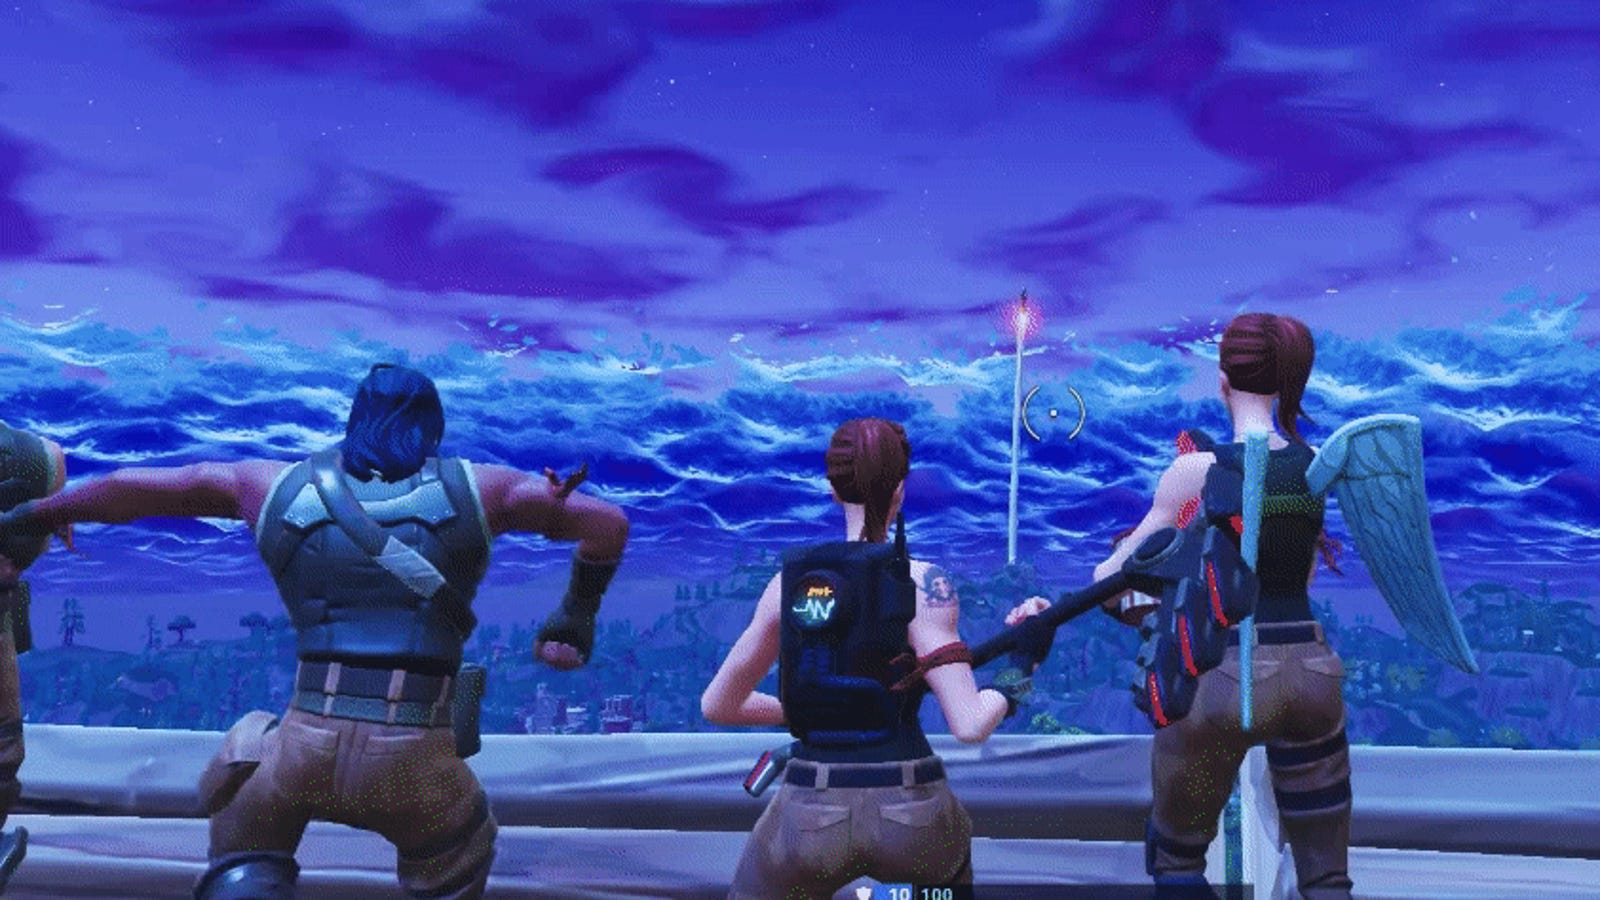 Fortnite Player Snags Kill Record By Wrecking Crowd Of Rocket-Watchers